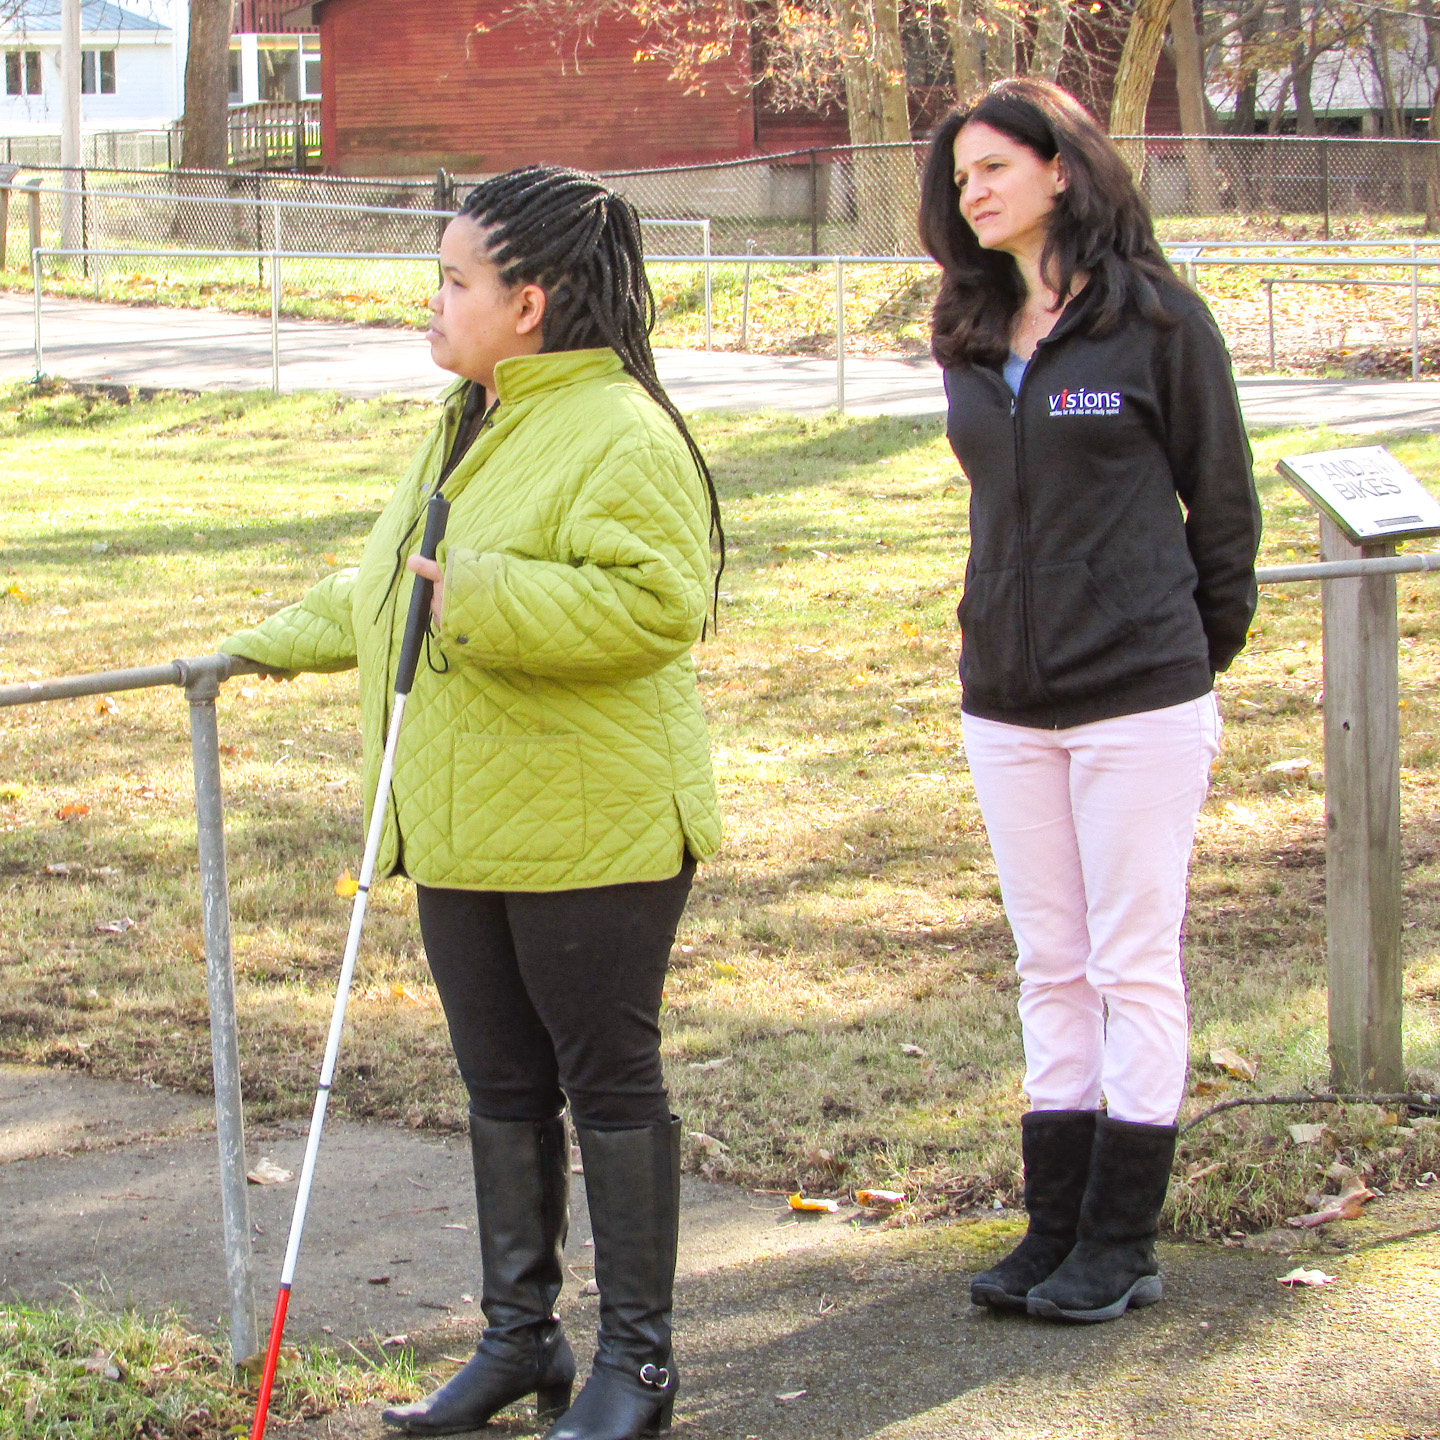 Image description: A woman holding her cane in one hand (left) holds onto a fence with the other, as her female instructor (right) stands behind her